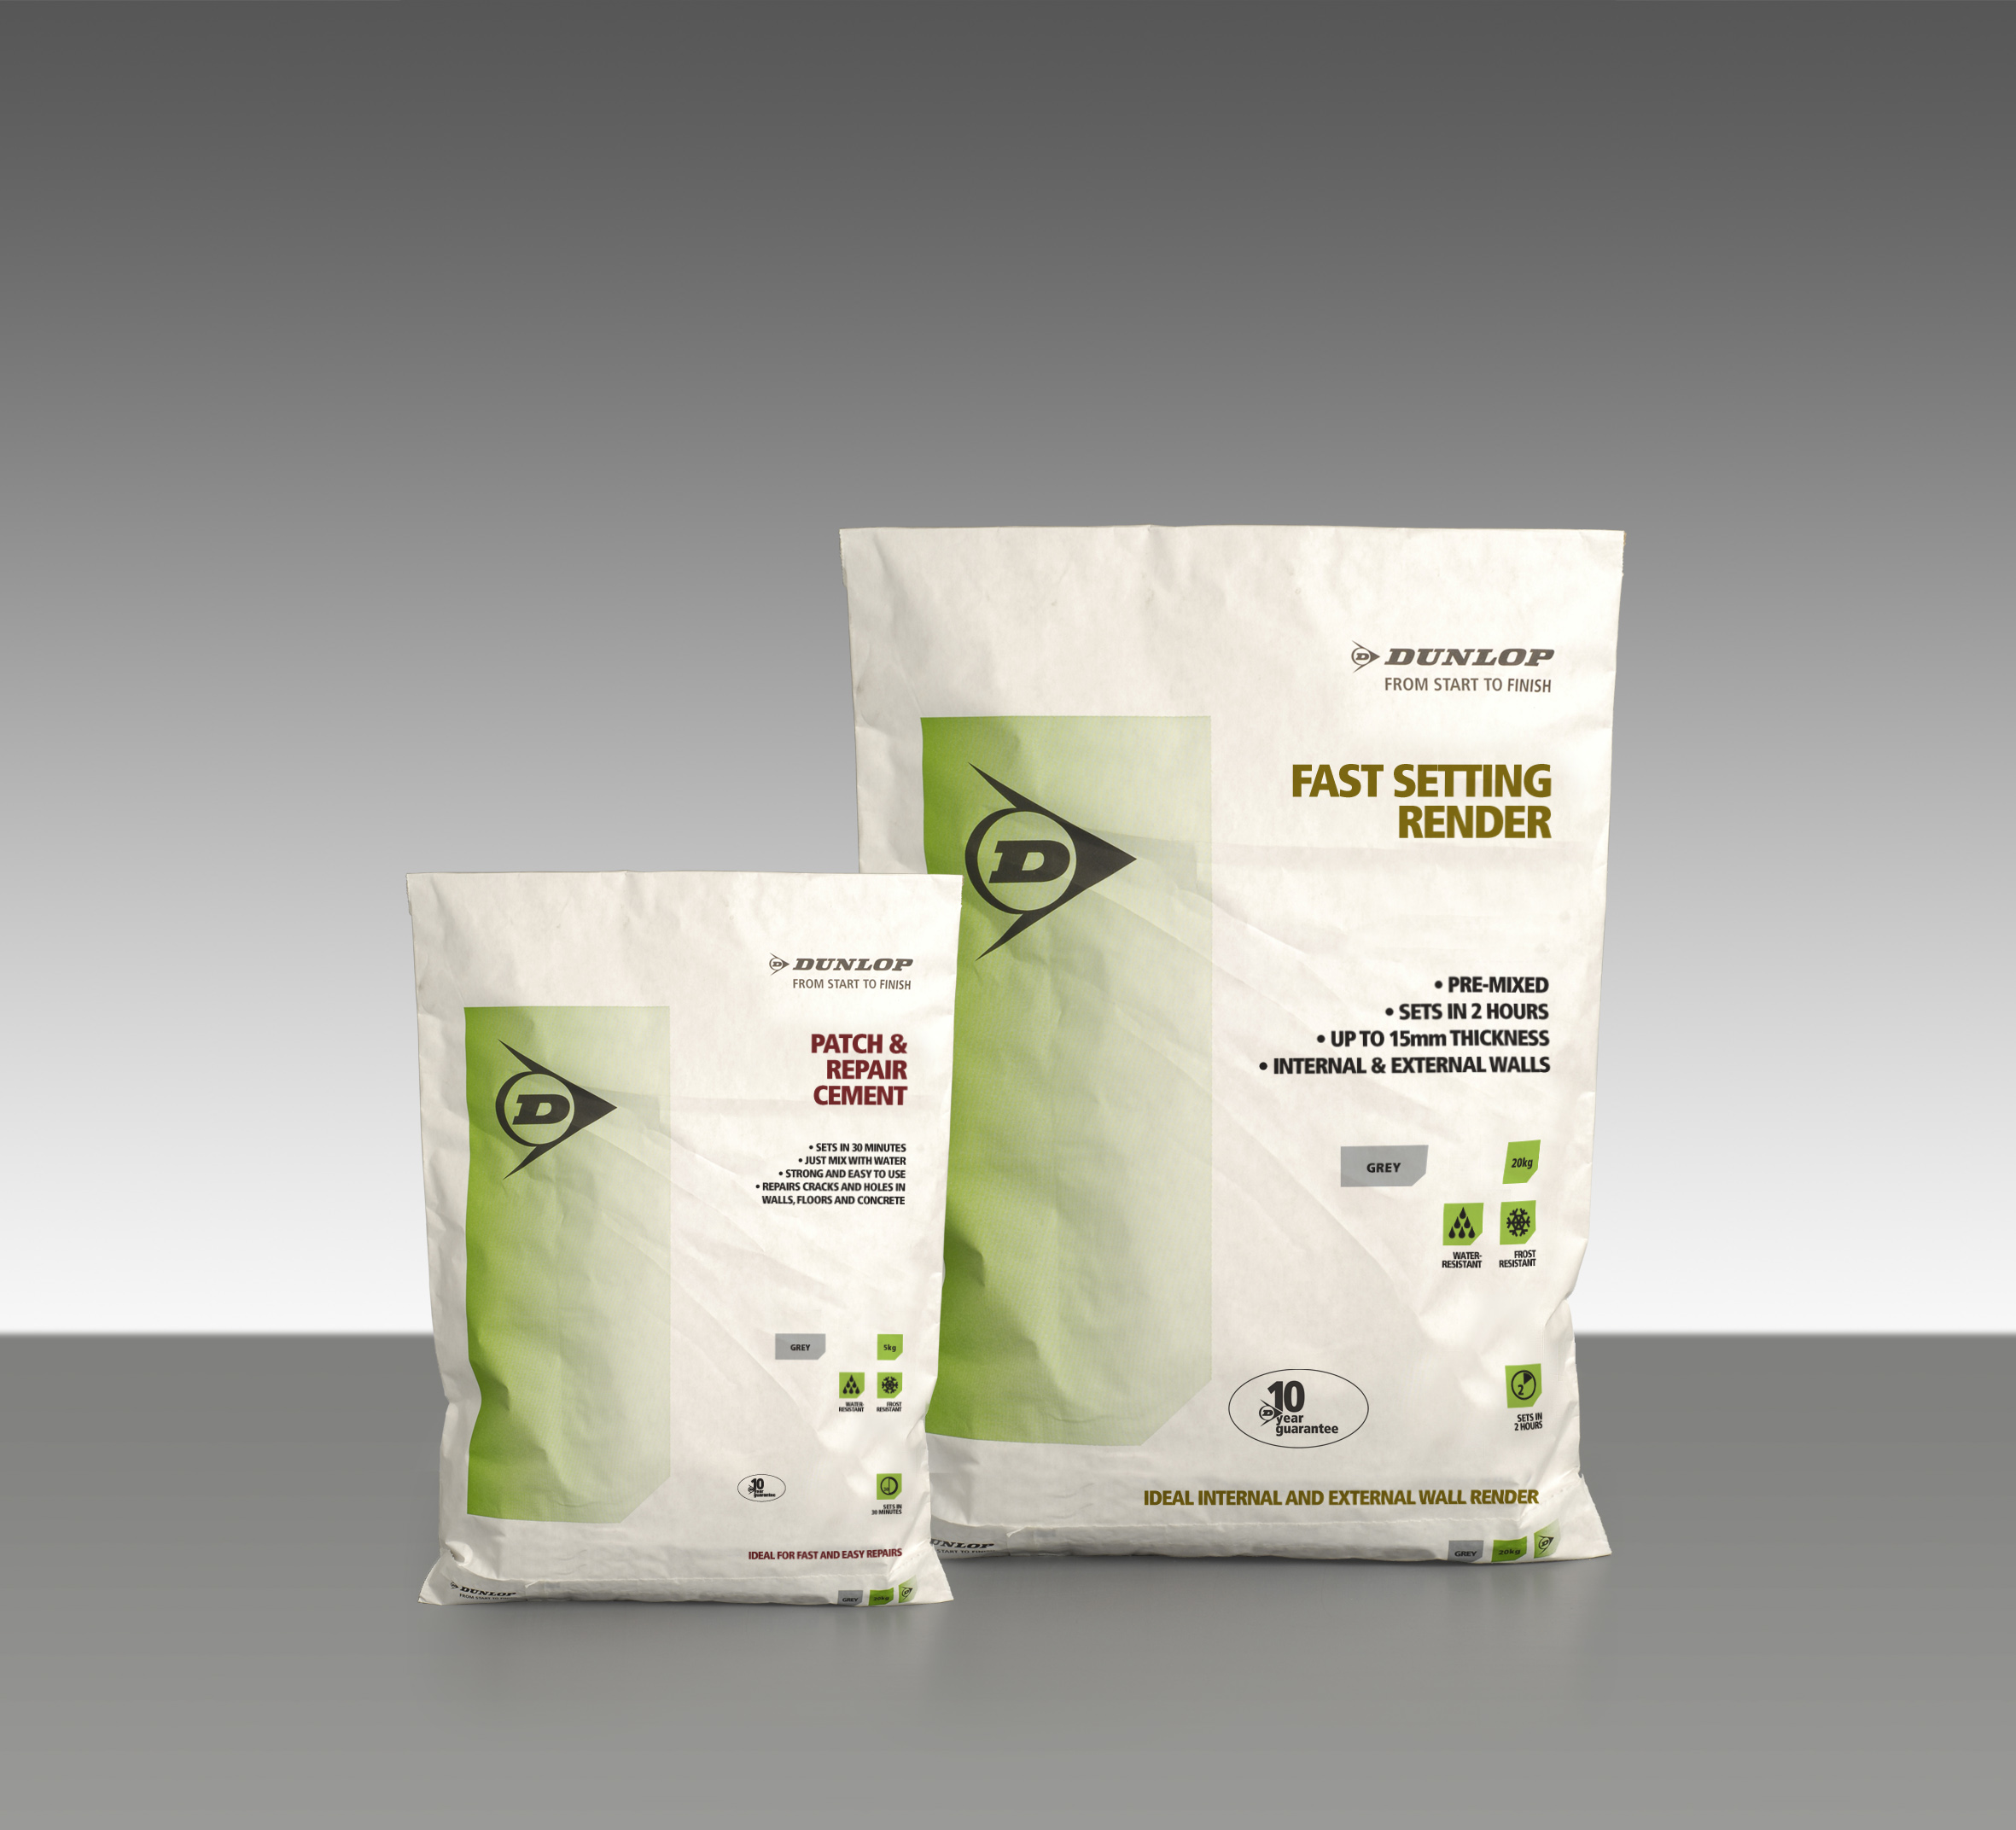 New Dunlop Adhesives preparation products will patch, repair and render